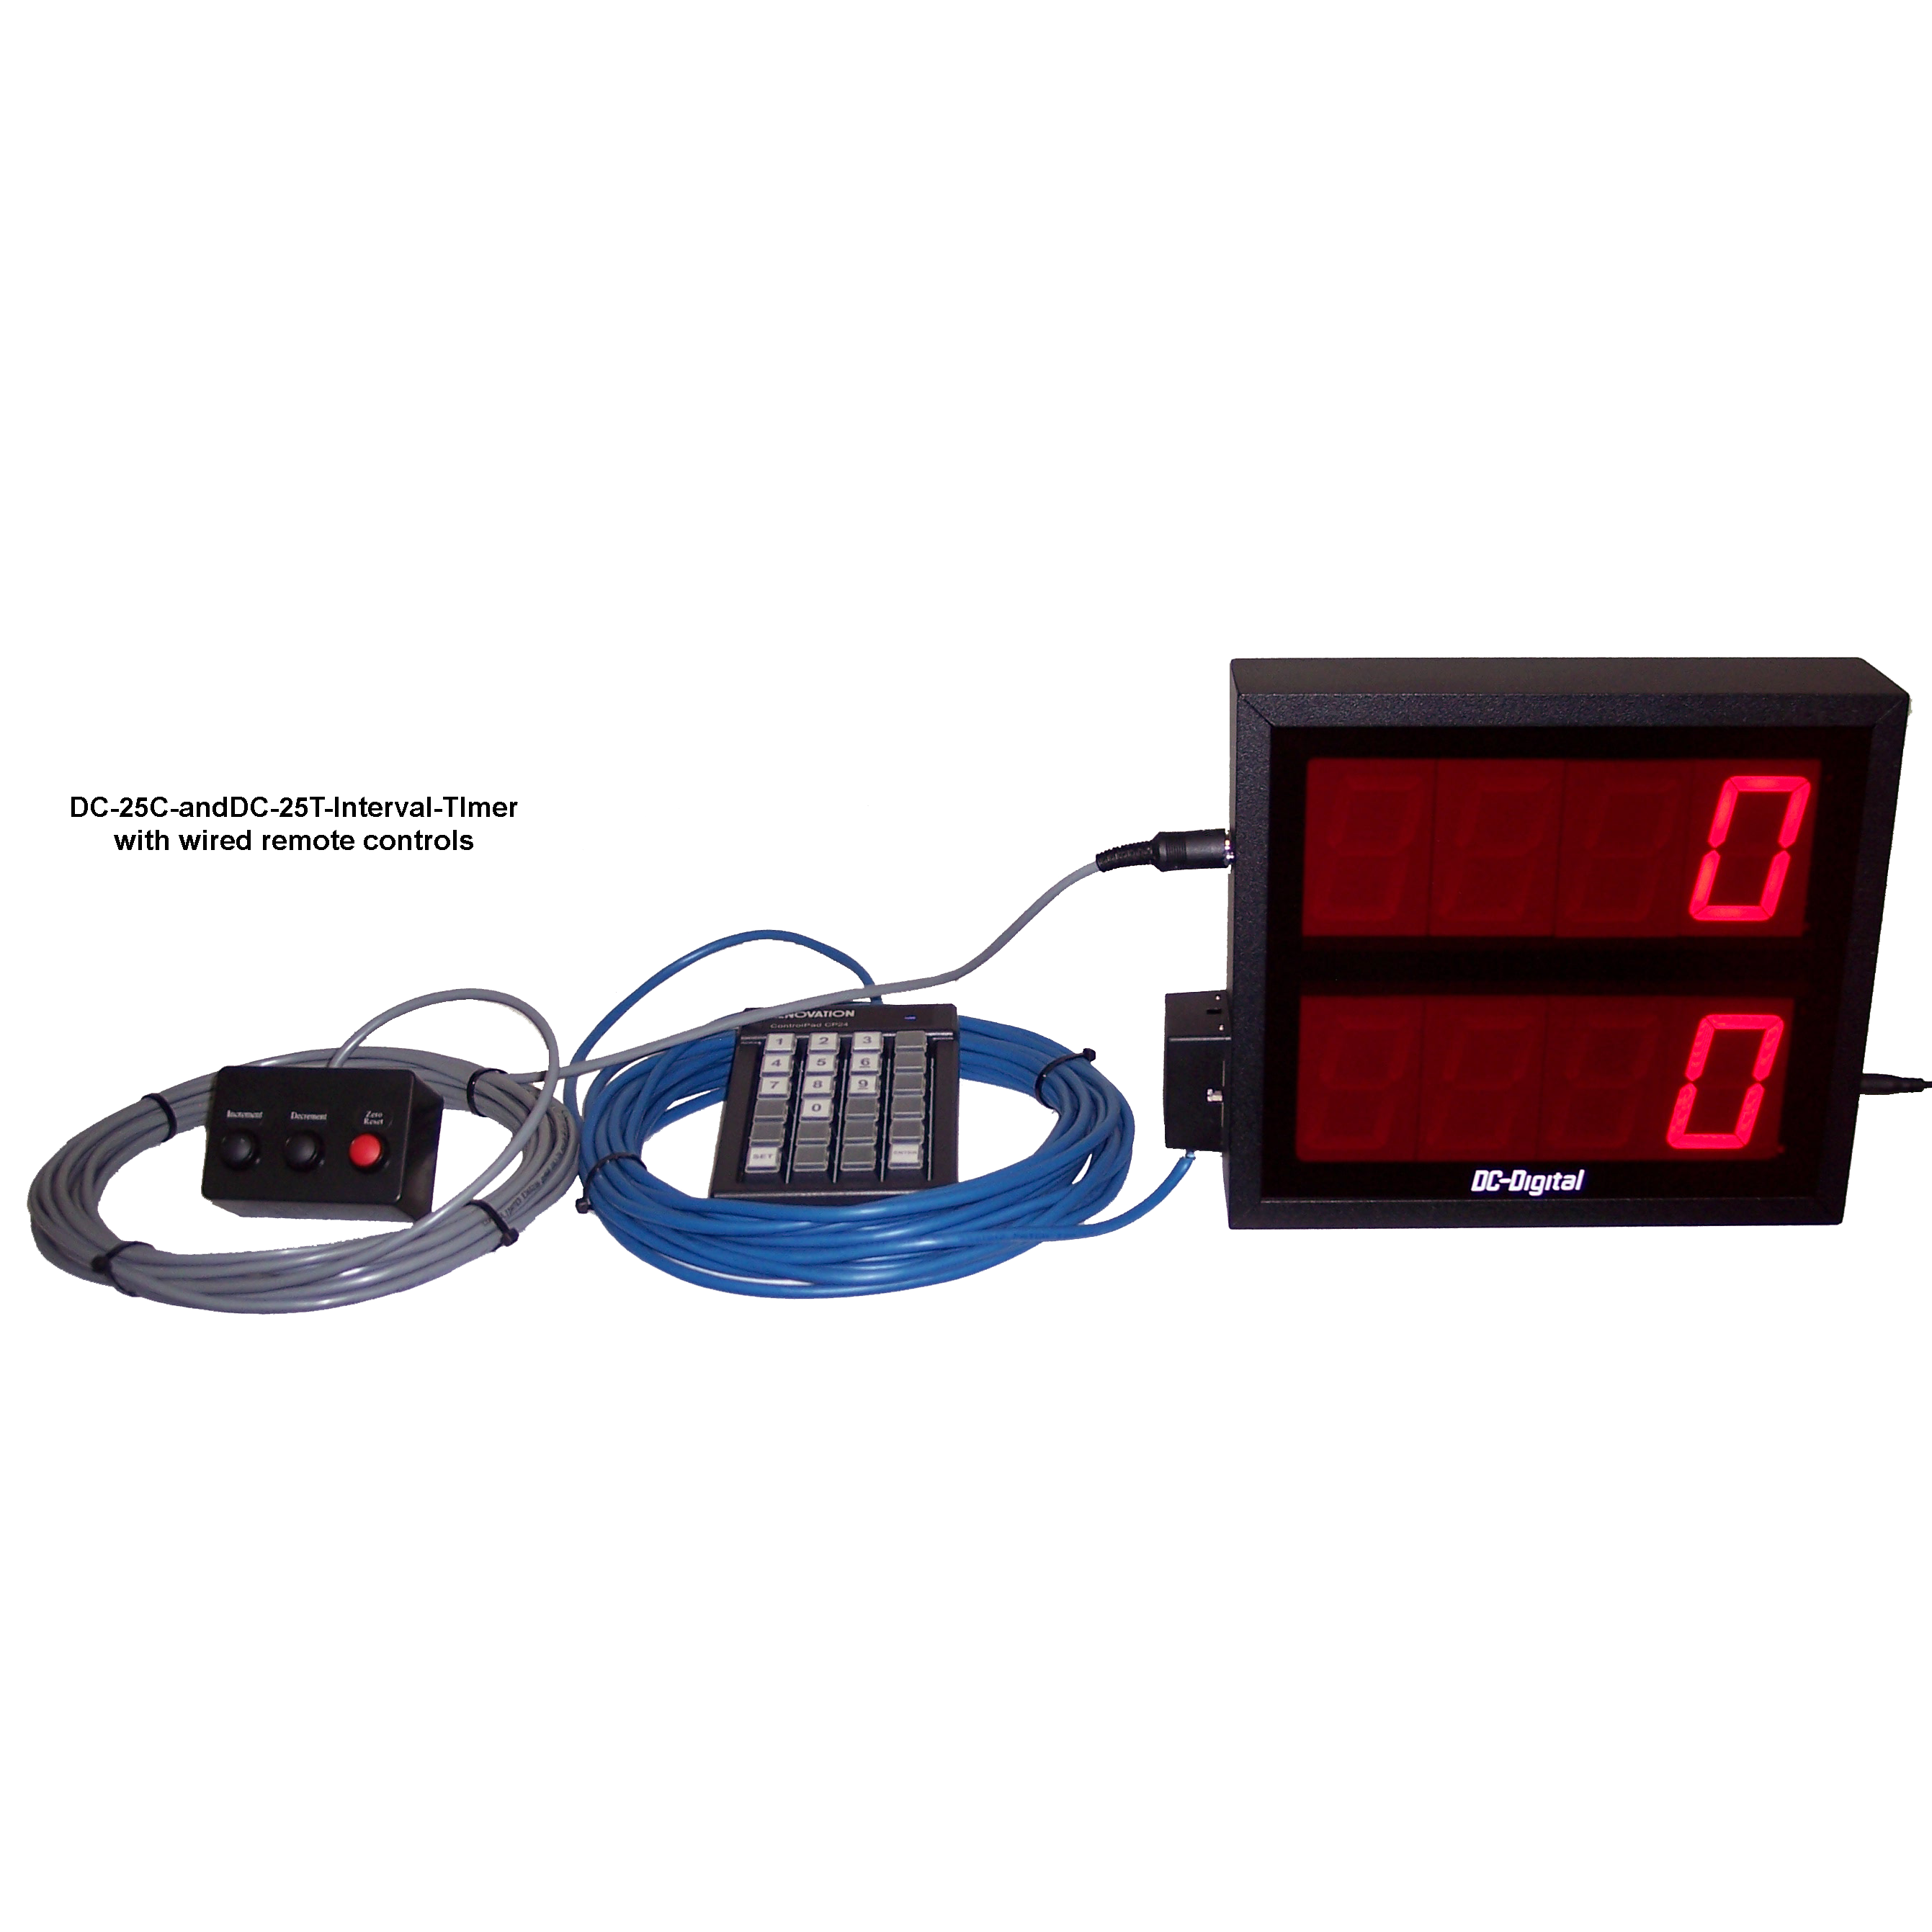 DC-25C-DC-25T-Interval-Timer-Wired-Remotes